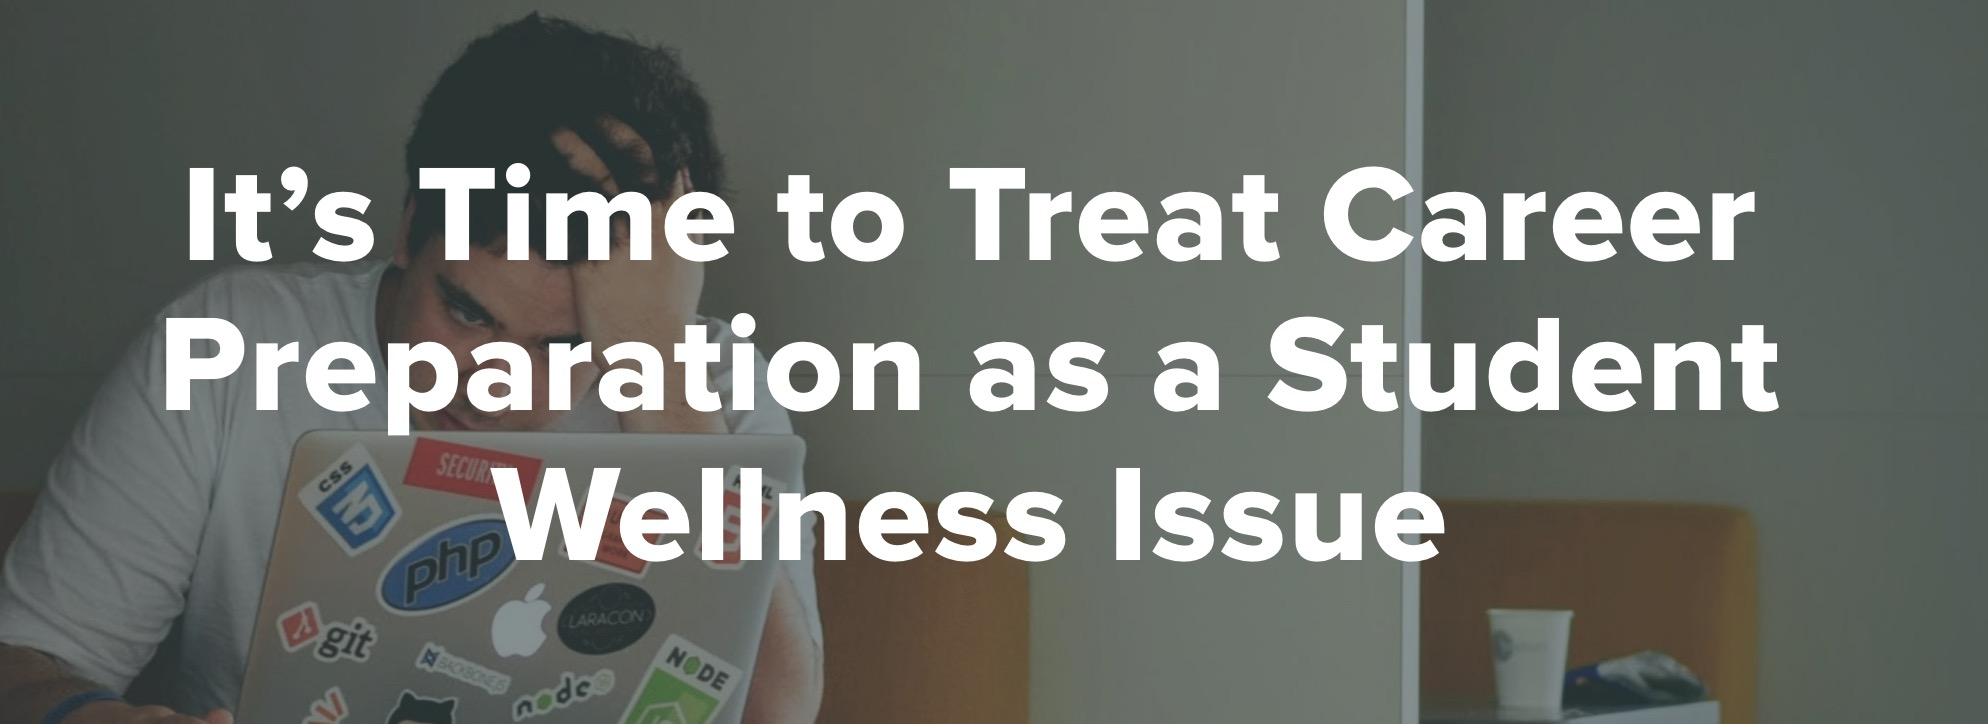 It's Time to Treat Career Preparation as a Student Wellness Issue